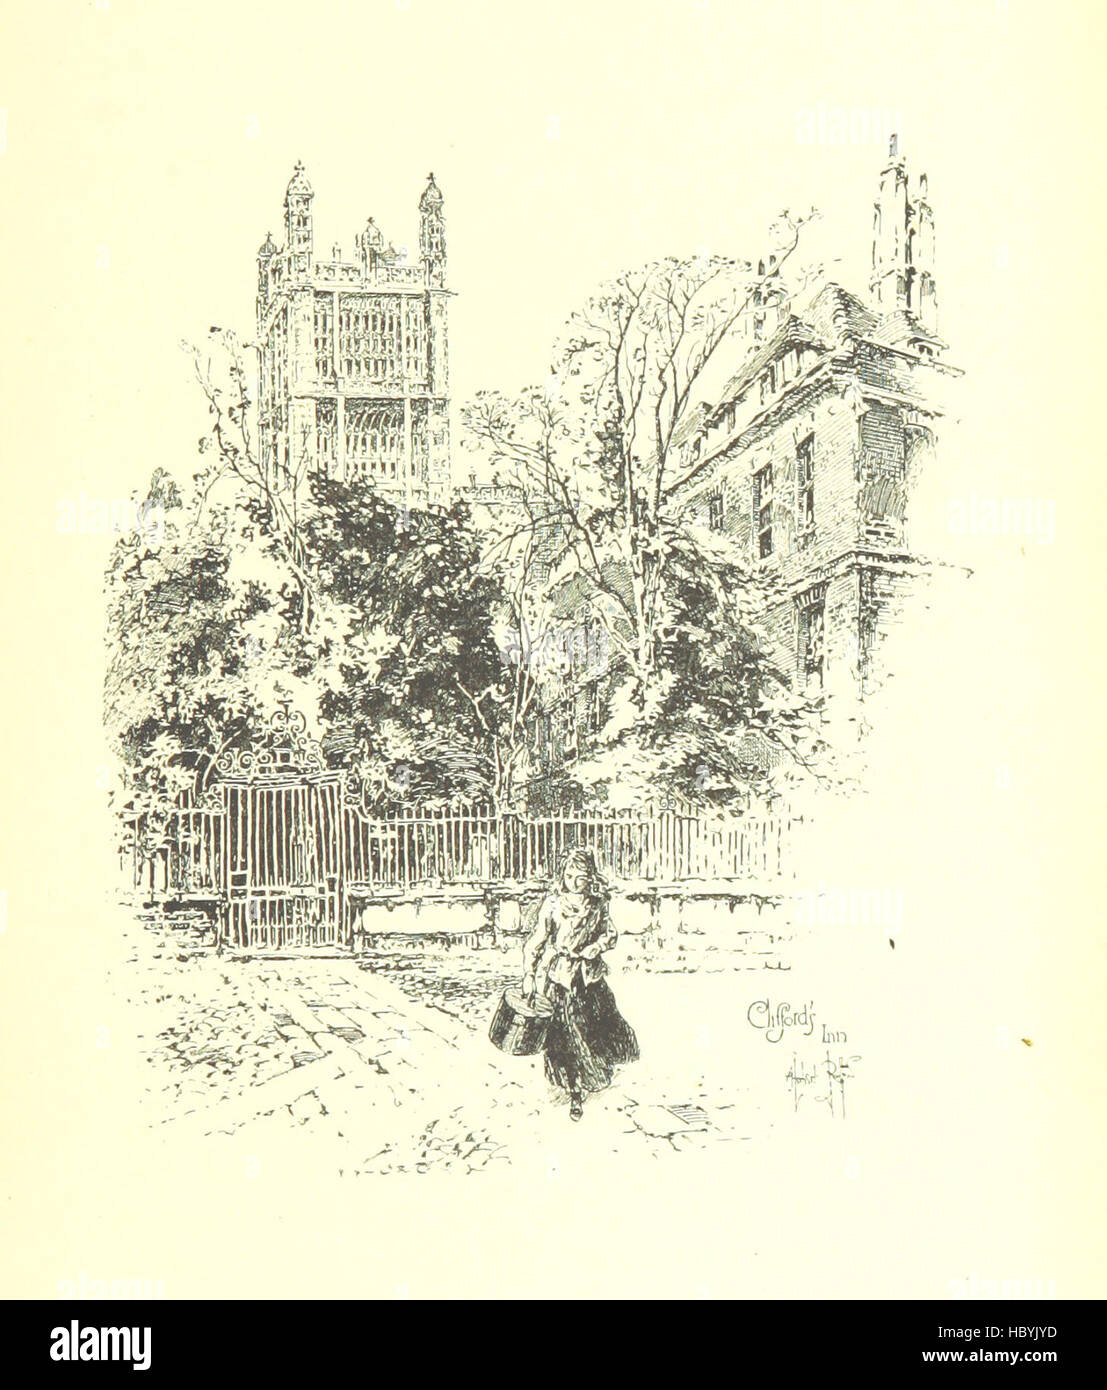 Image taken from page 289 of 'The Inns of Court and Chancery ... New edition' Image taken from page 289 - Stock Image